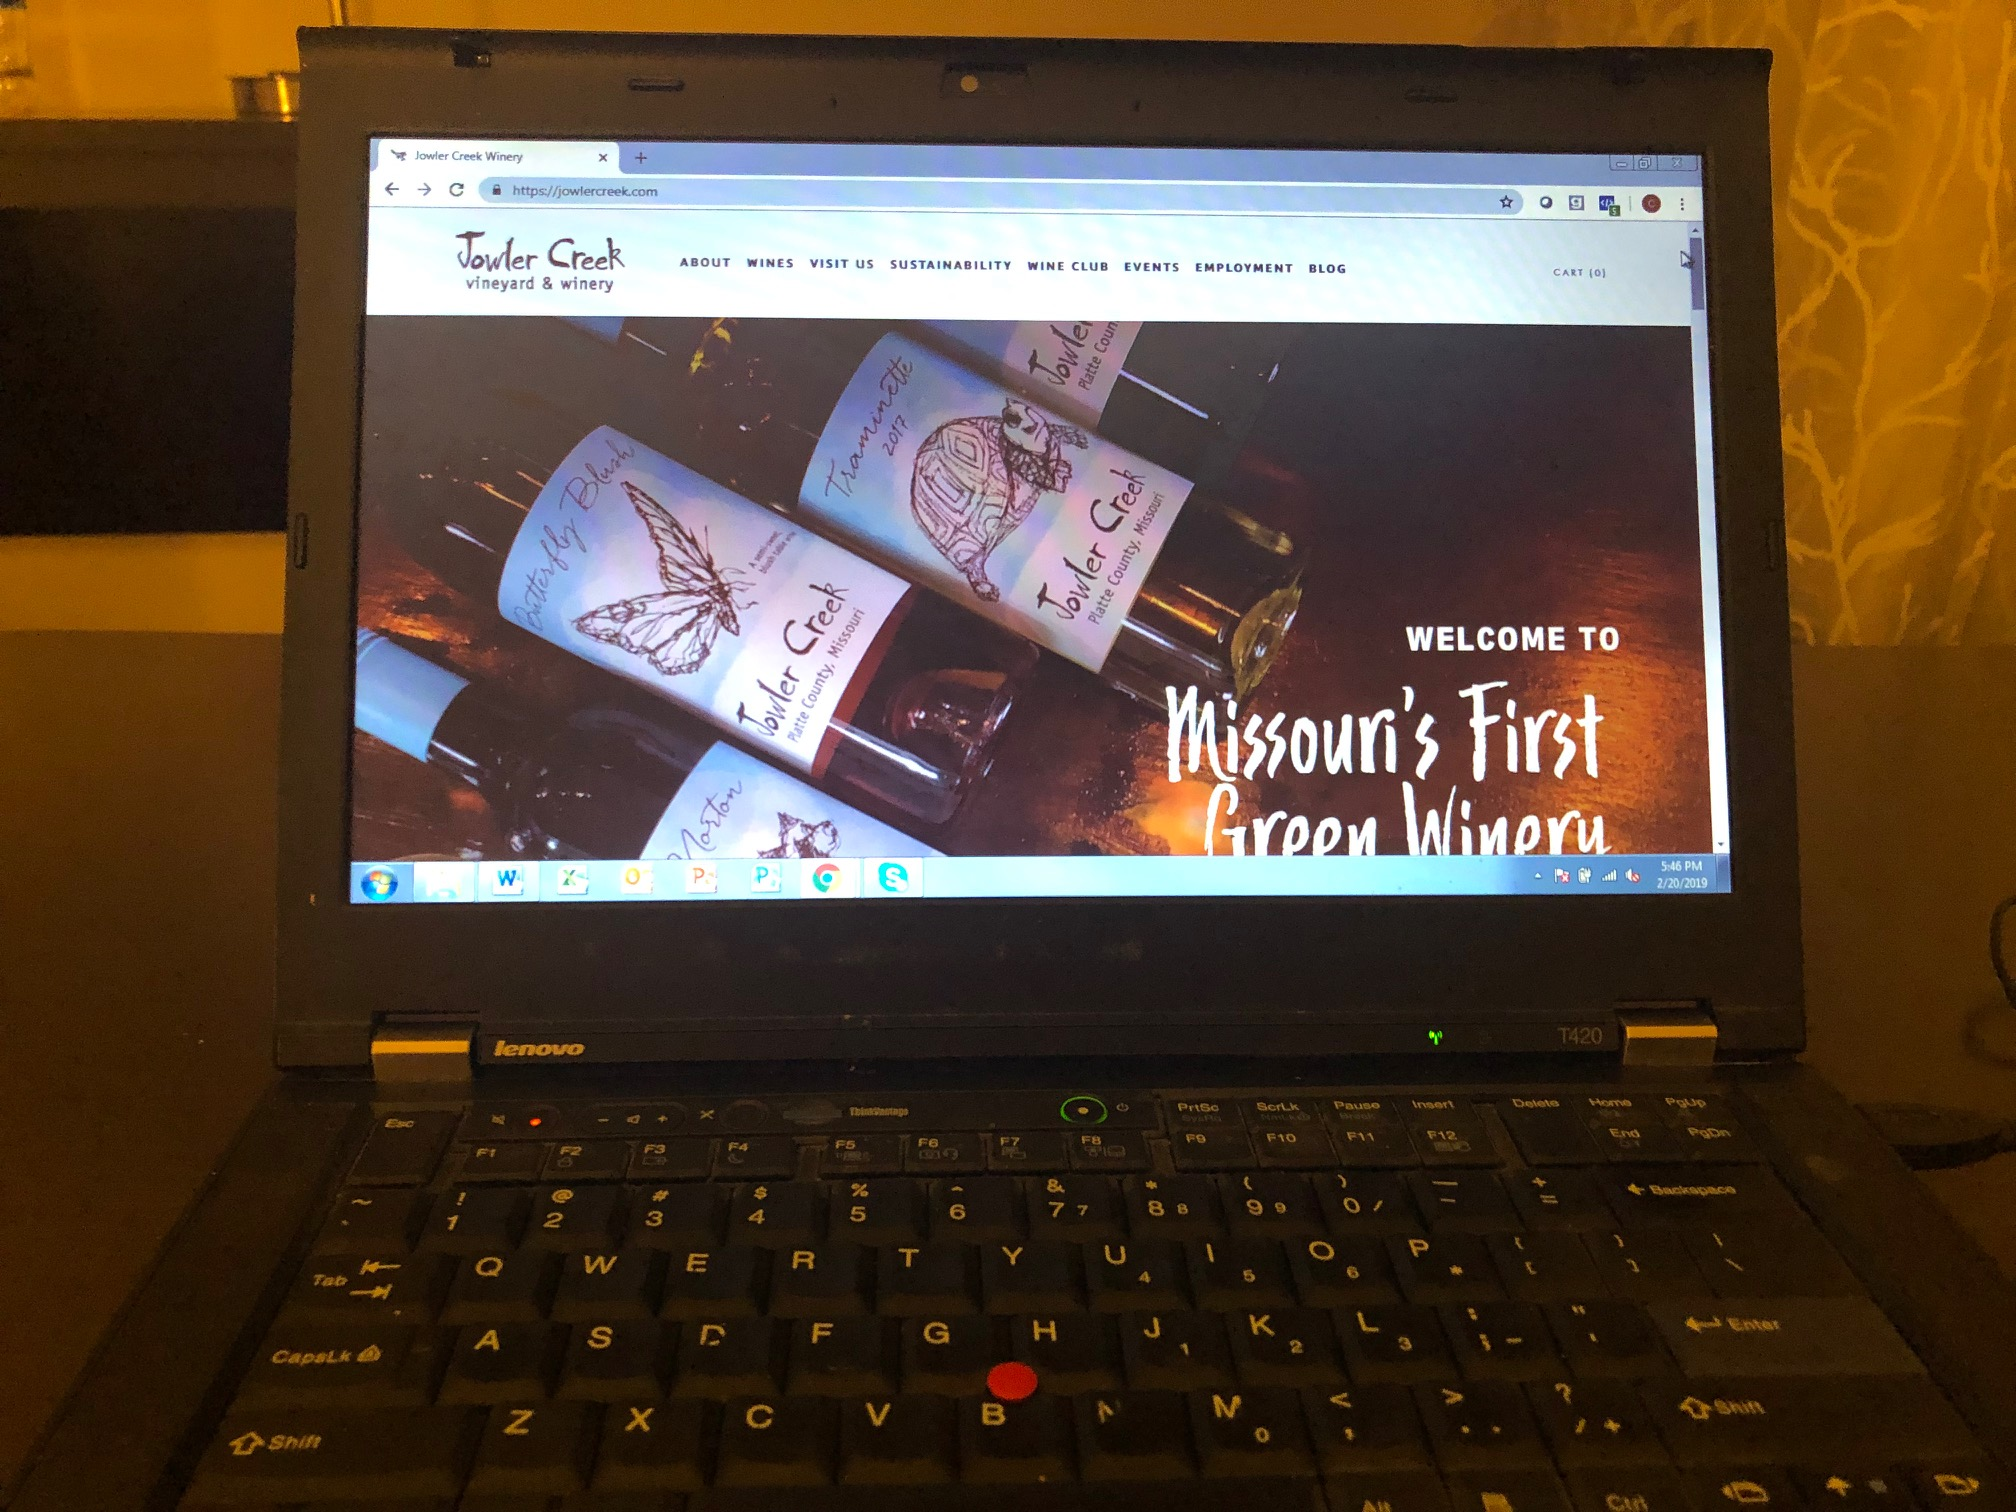 jowler-creek-winery-green-website-design.jpg